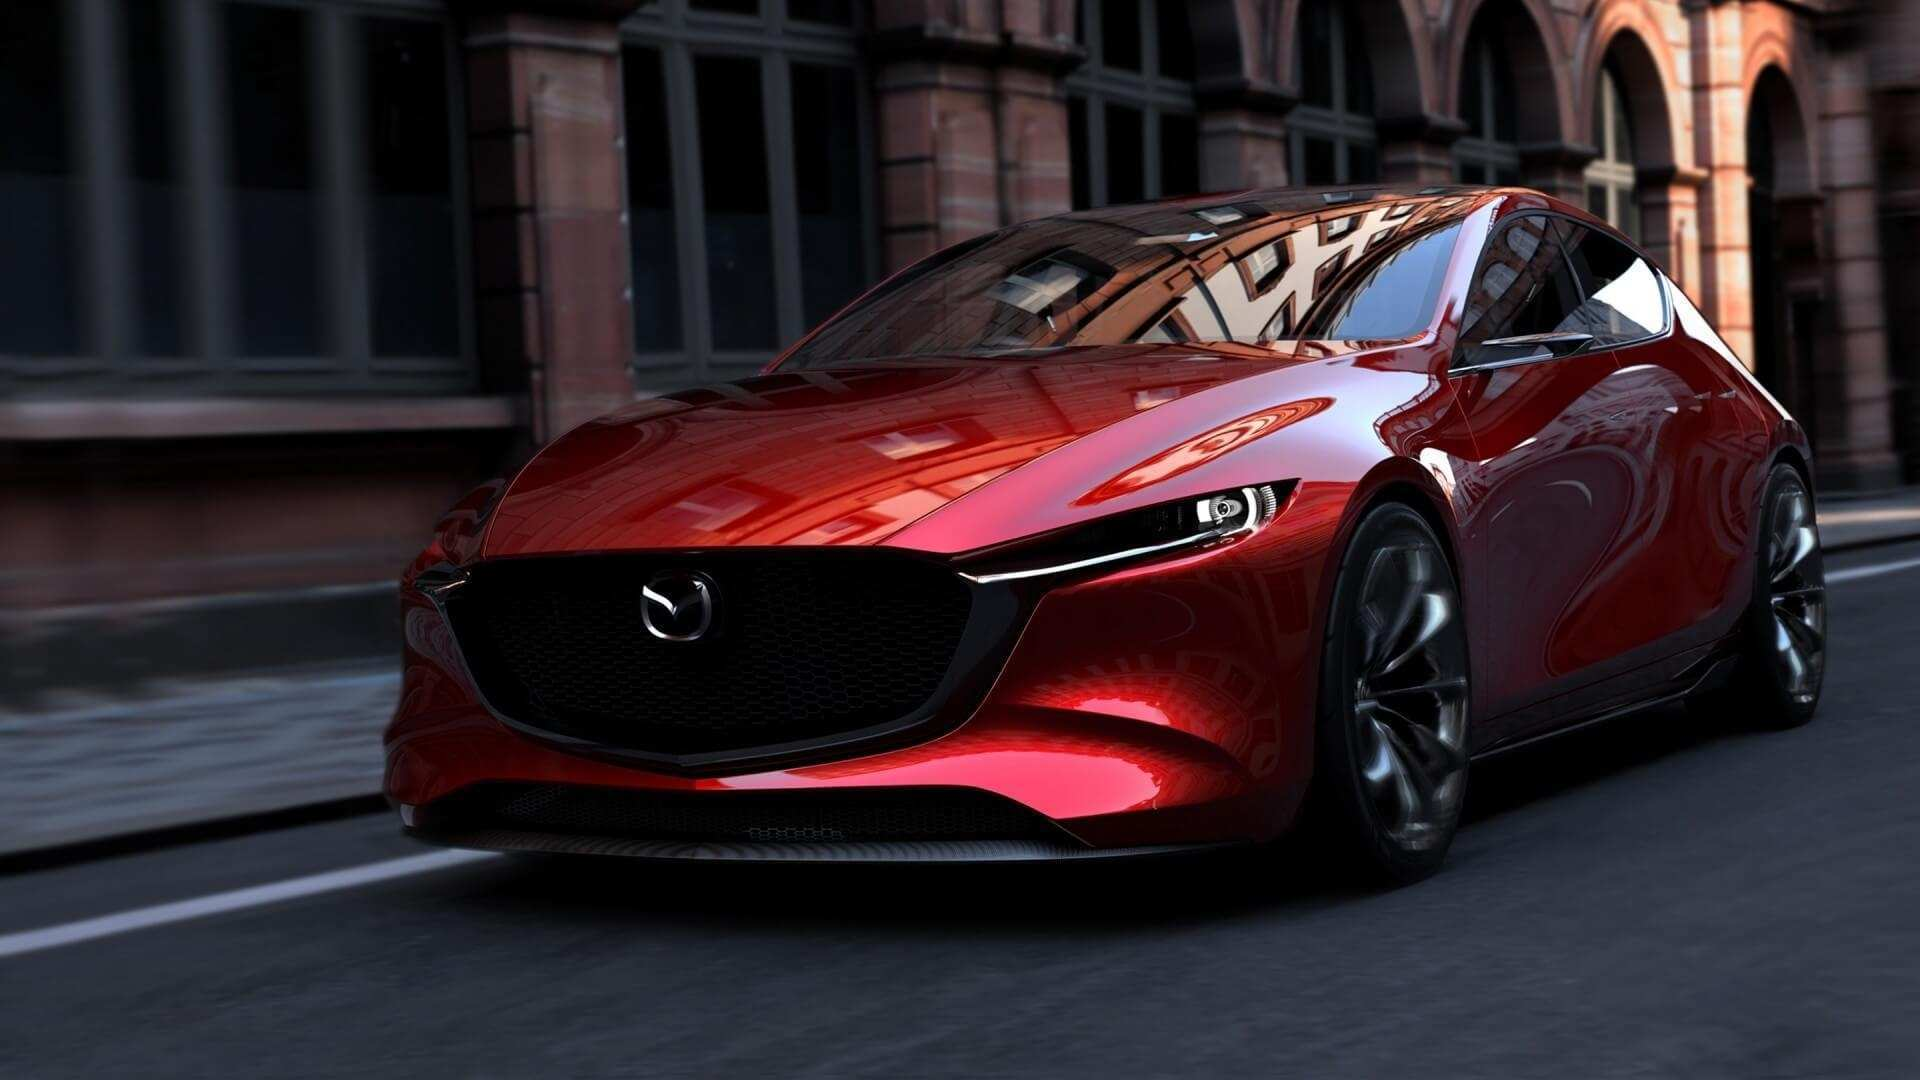 88 Concept of 2020 Mazda Miata Reviews for 2020 Mazda Miata